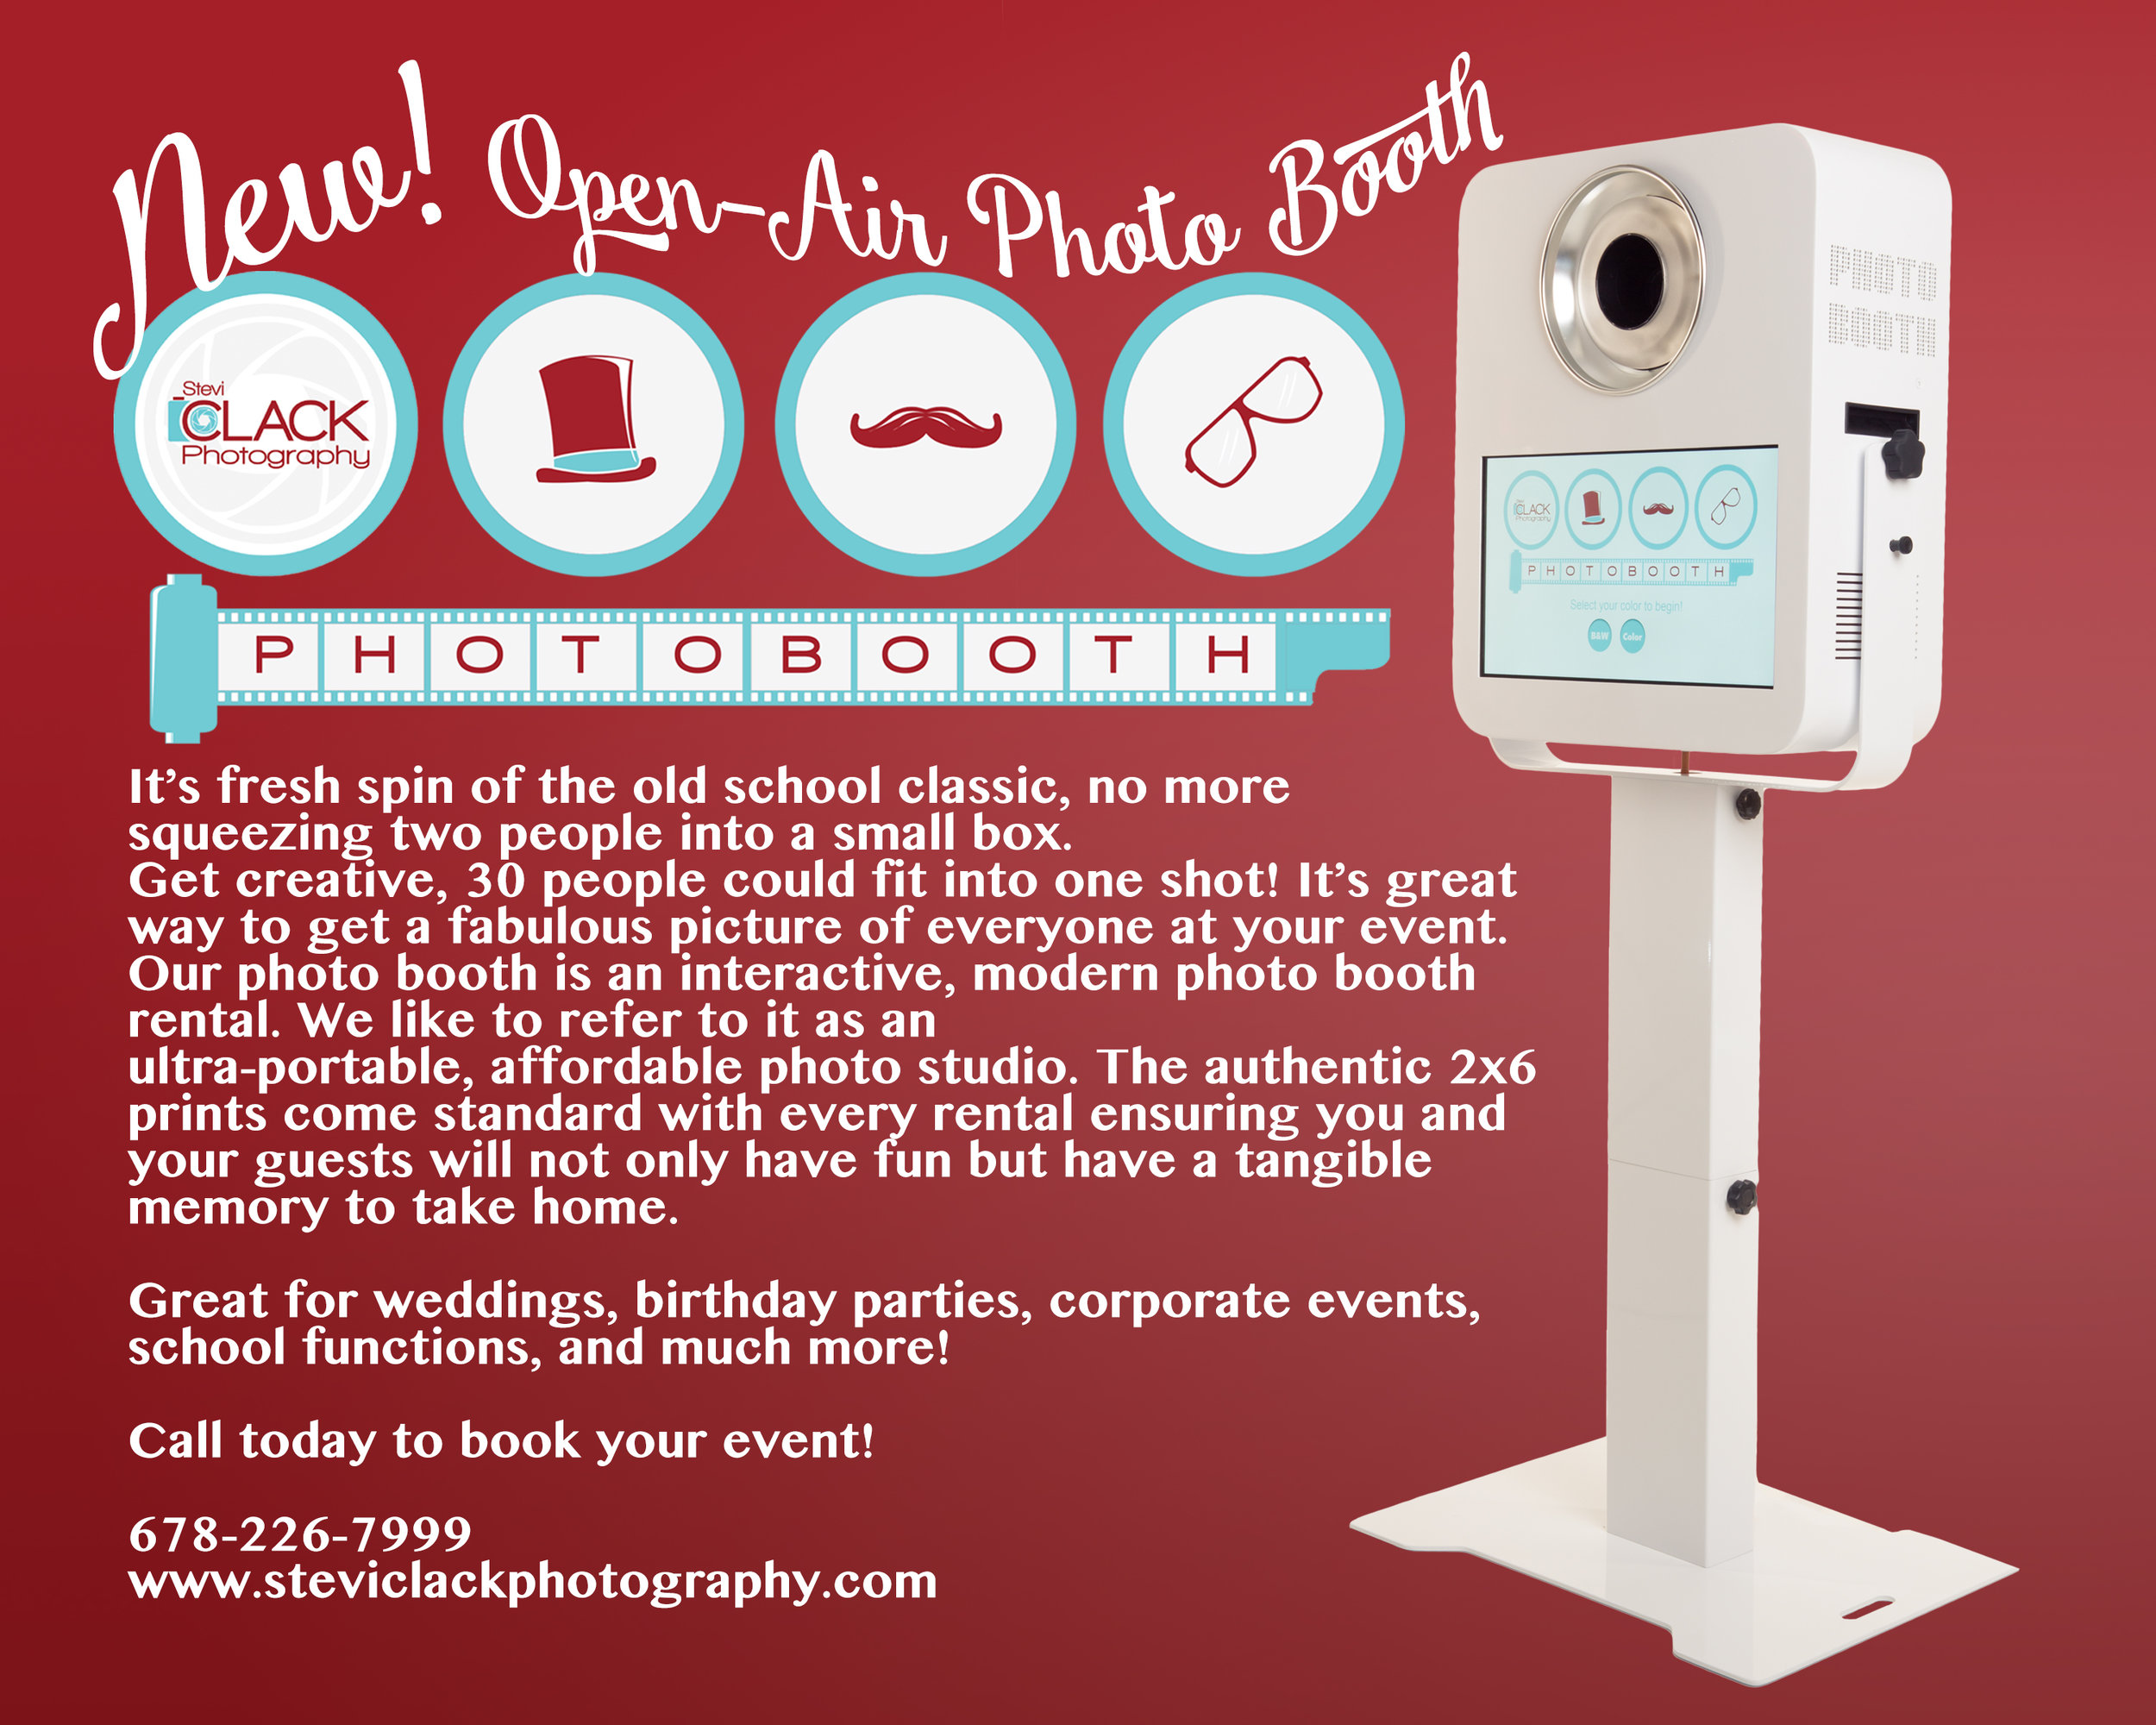 photobooth ad red